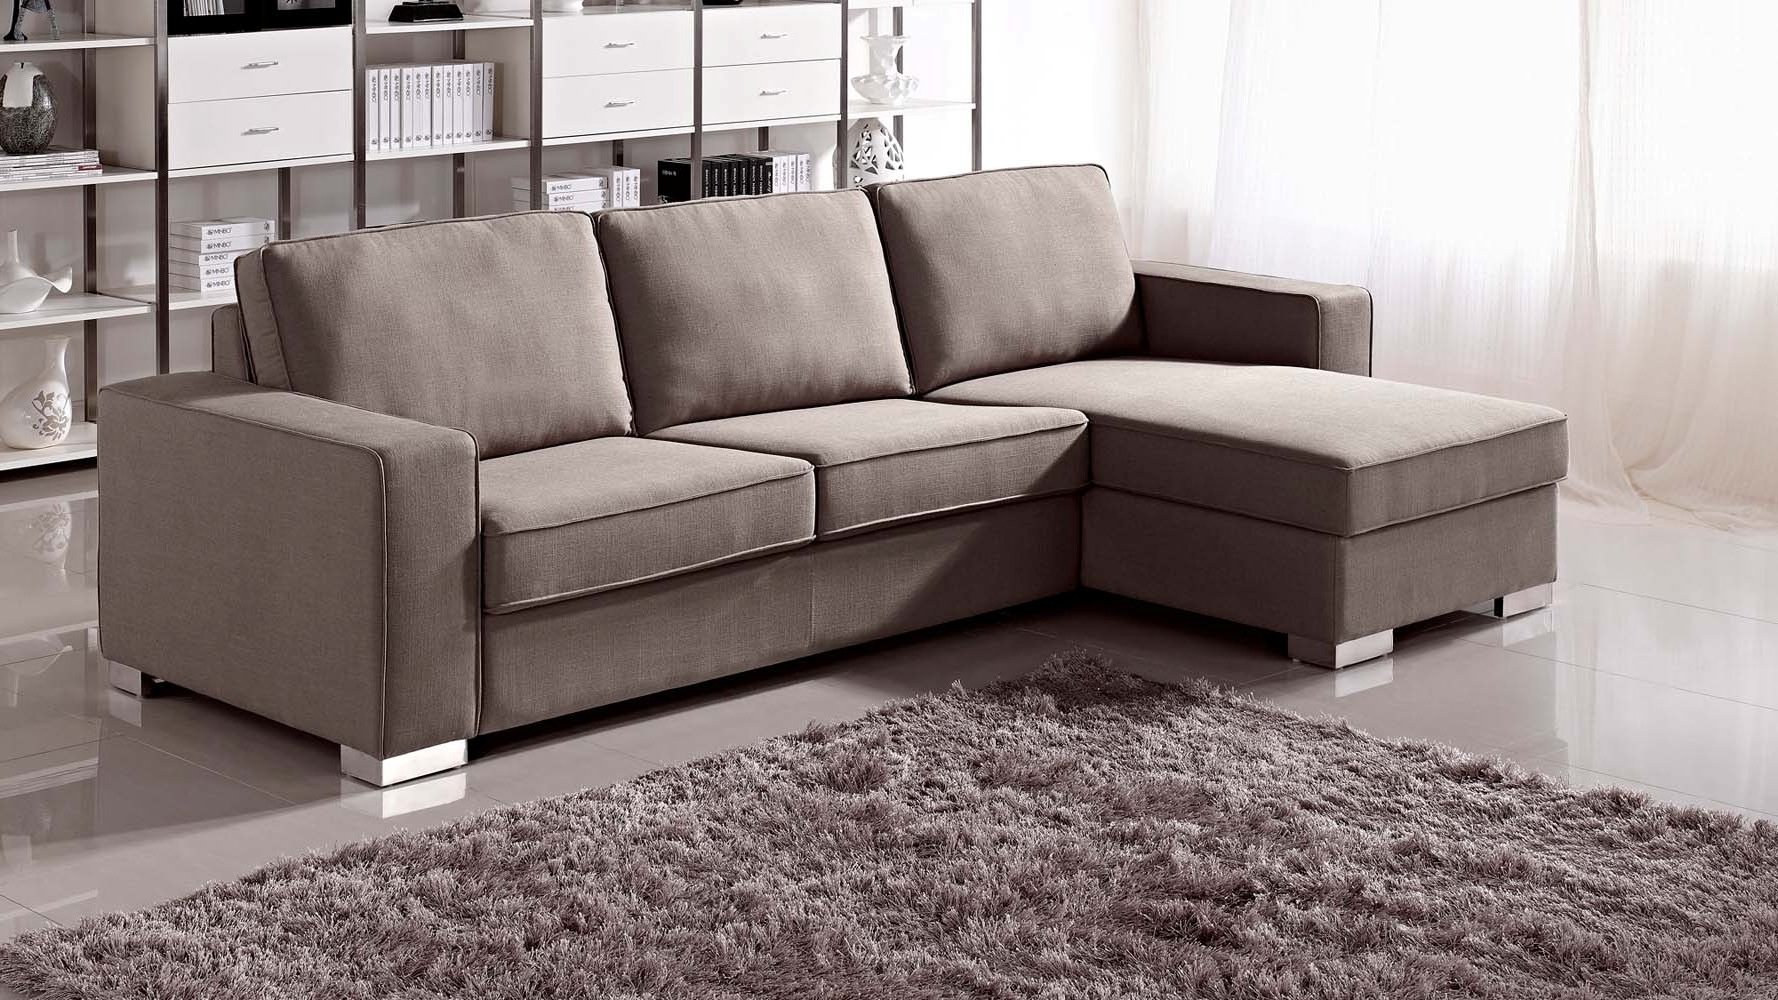 Innovative Sofa Sleeper Sectionals Beautiful Interior Design Style With Regard To 2018 L Shaped Couches With Chaise (Gallery 7 of 15)